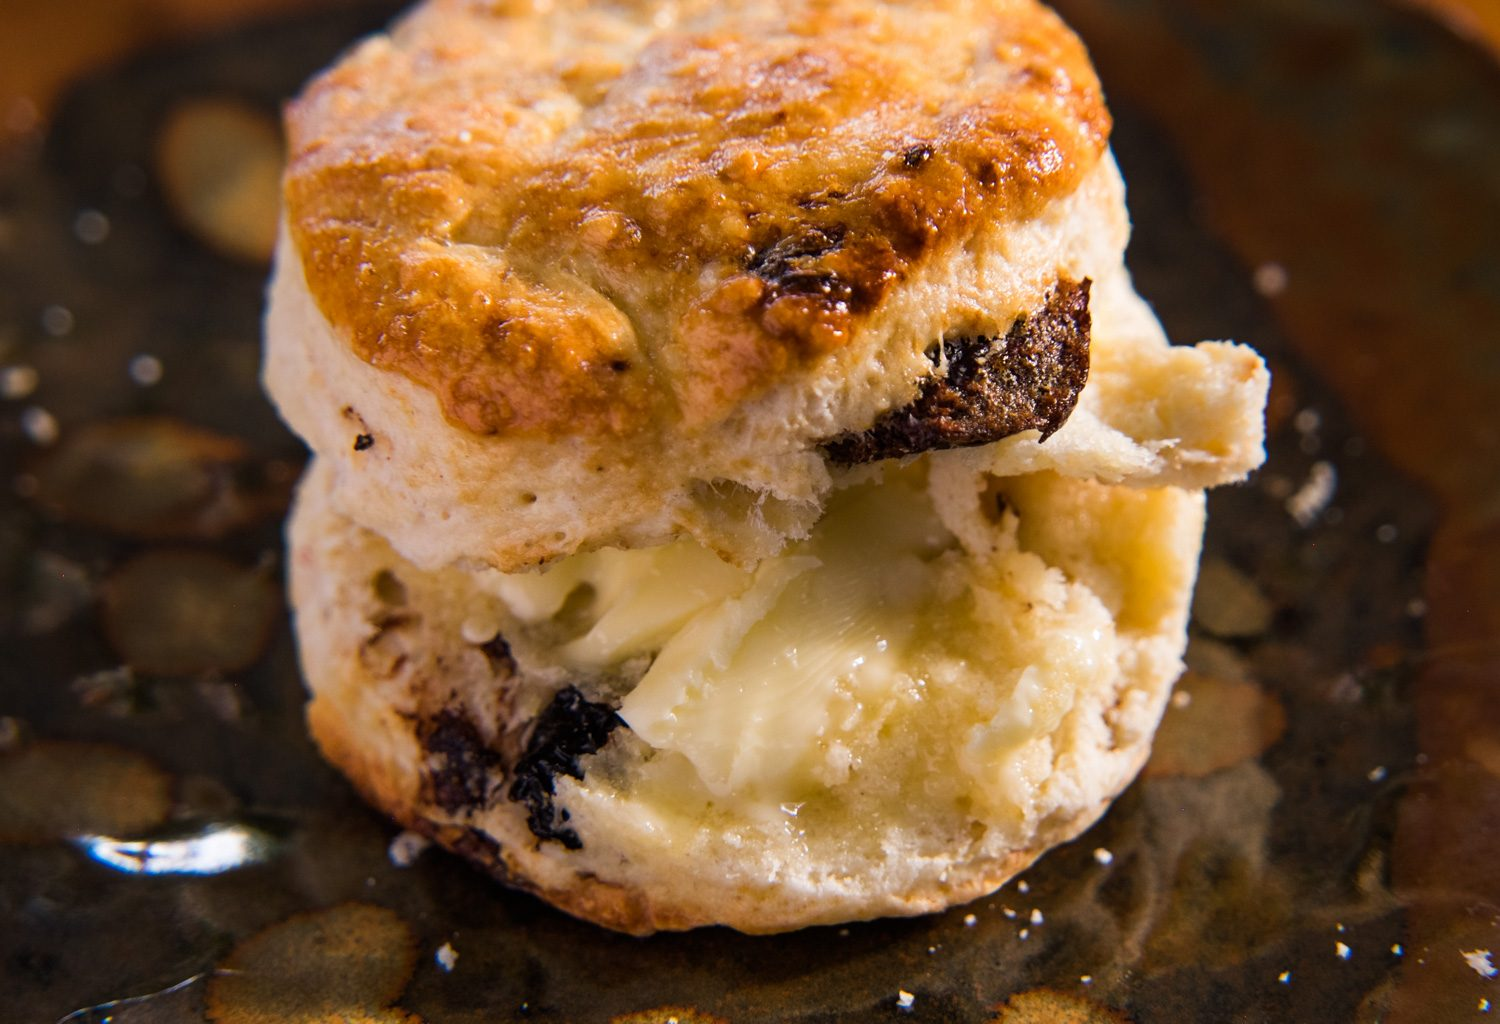 Date Scone dripping in organic salted butter.